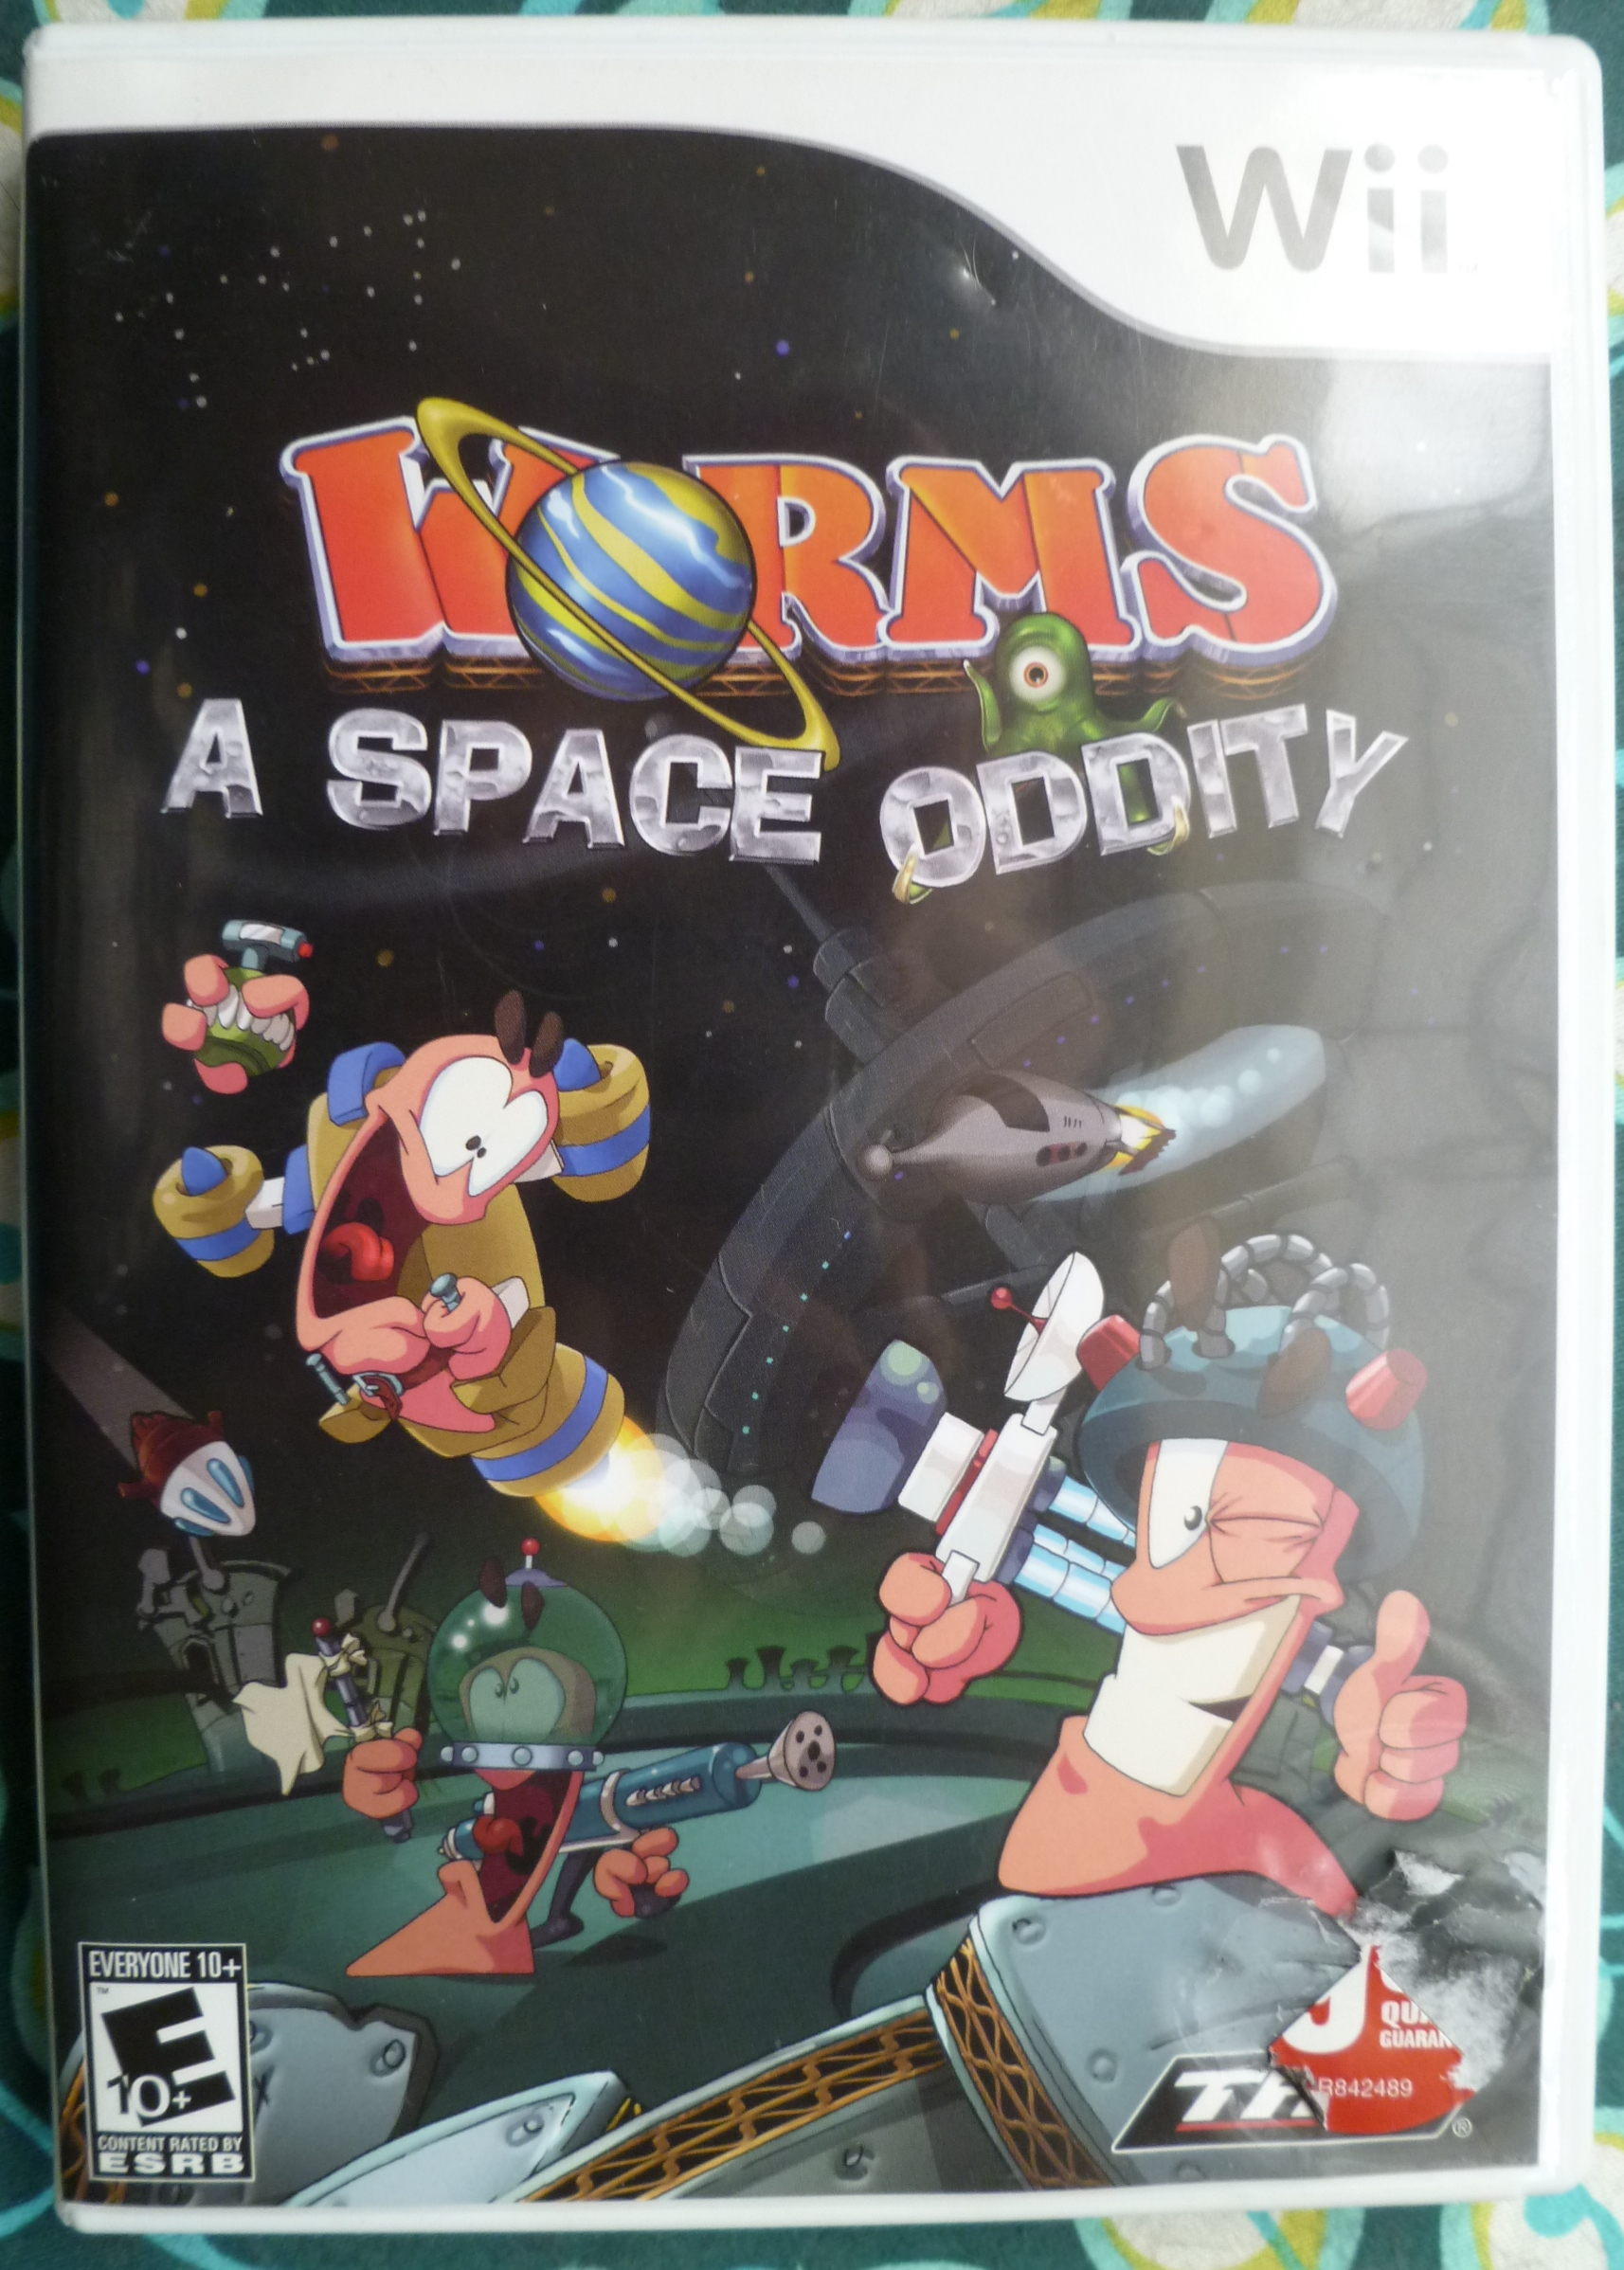 Worms A Space Oddity Cover